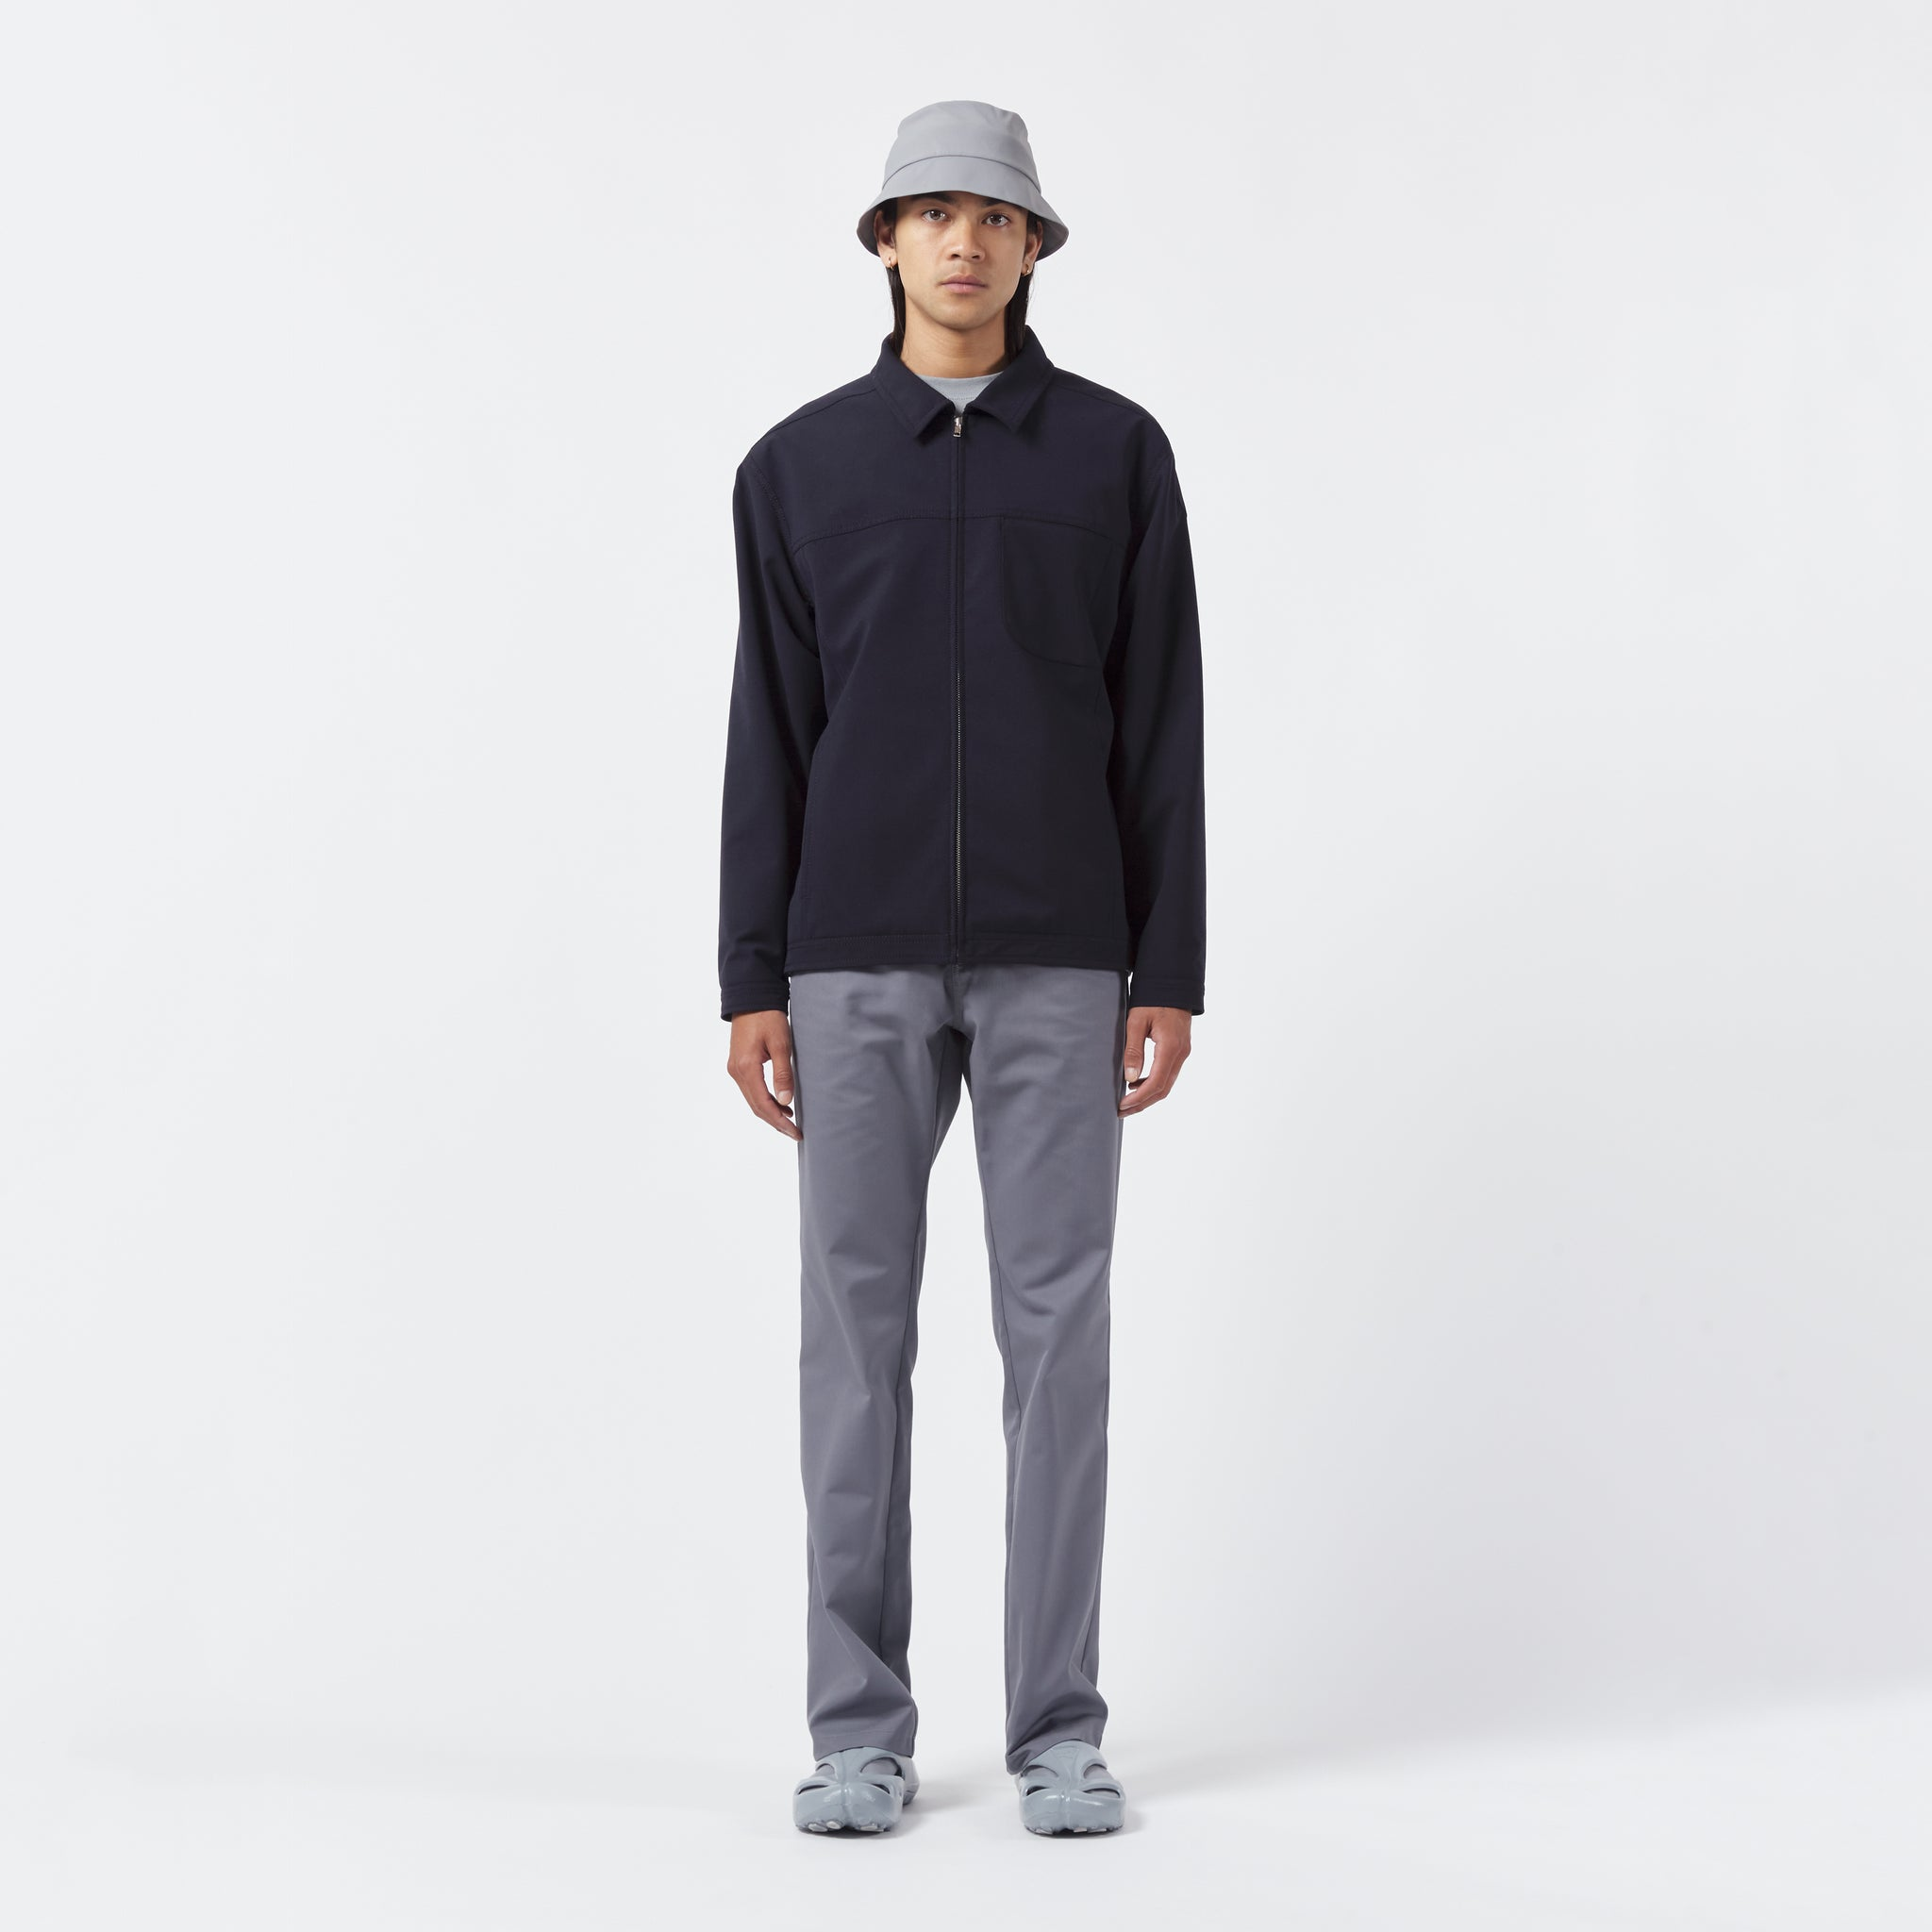 AFFIX WORKS AFFX WRKS BOXED BLOUSON DARK NAVY